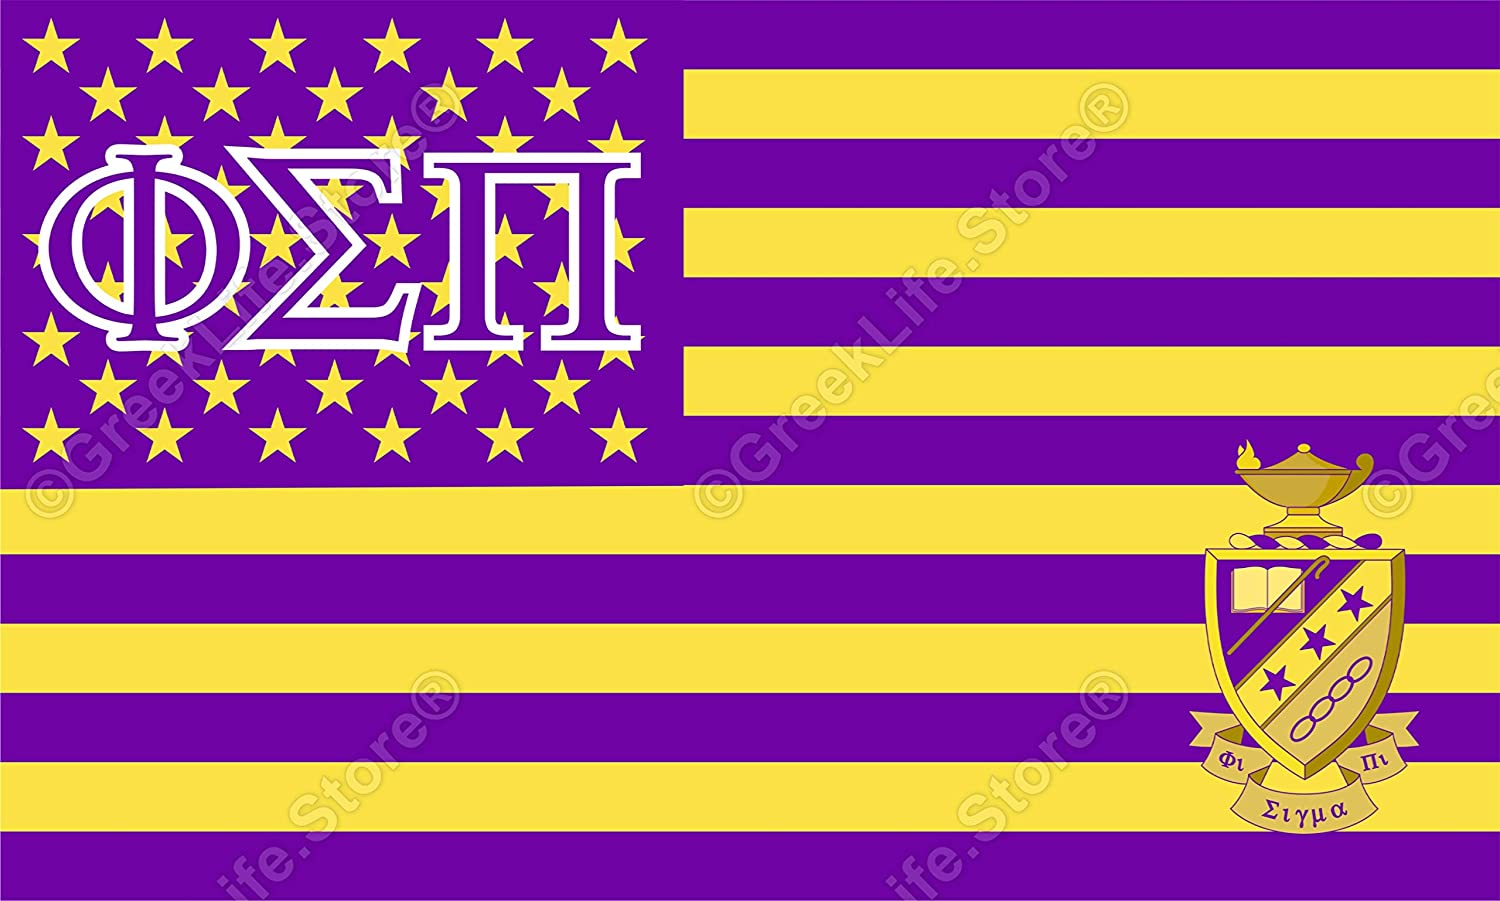 Phi Sigma Pi Officially Licensed Computer Tablet Decal Sticker 3x5 inches